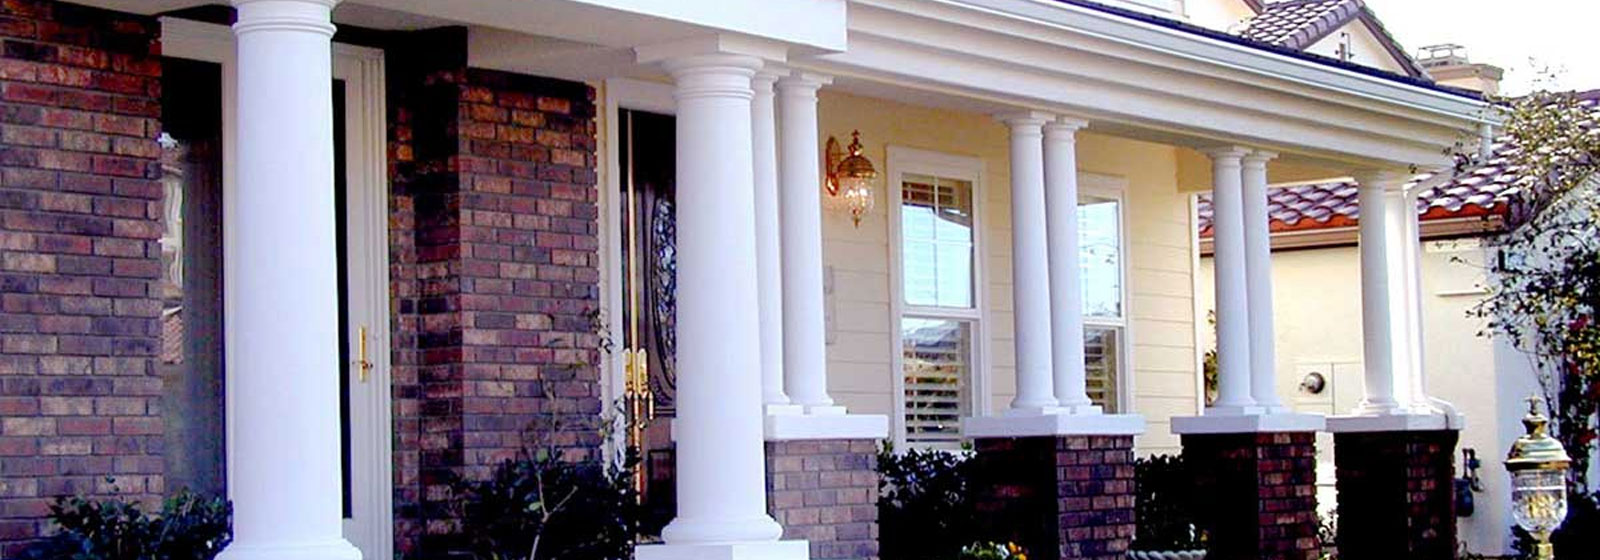 decorative olympus bistrodre columns landscape porch fiberglass and digital camera painting